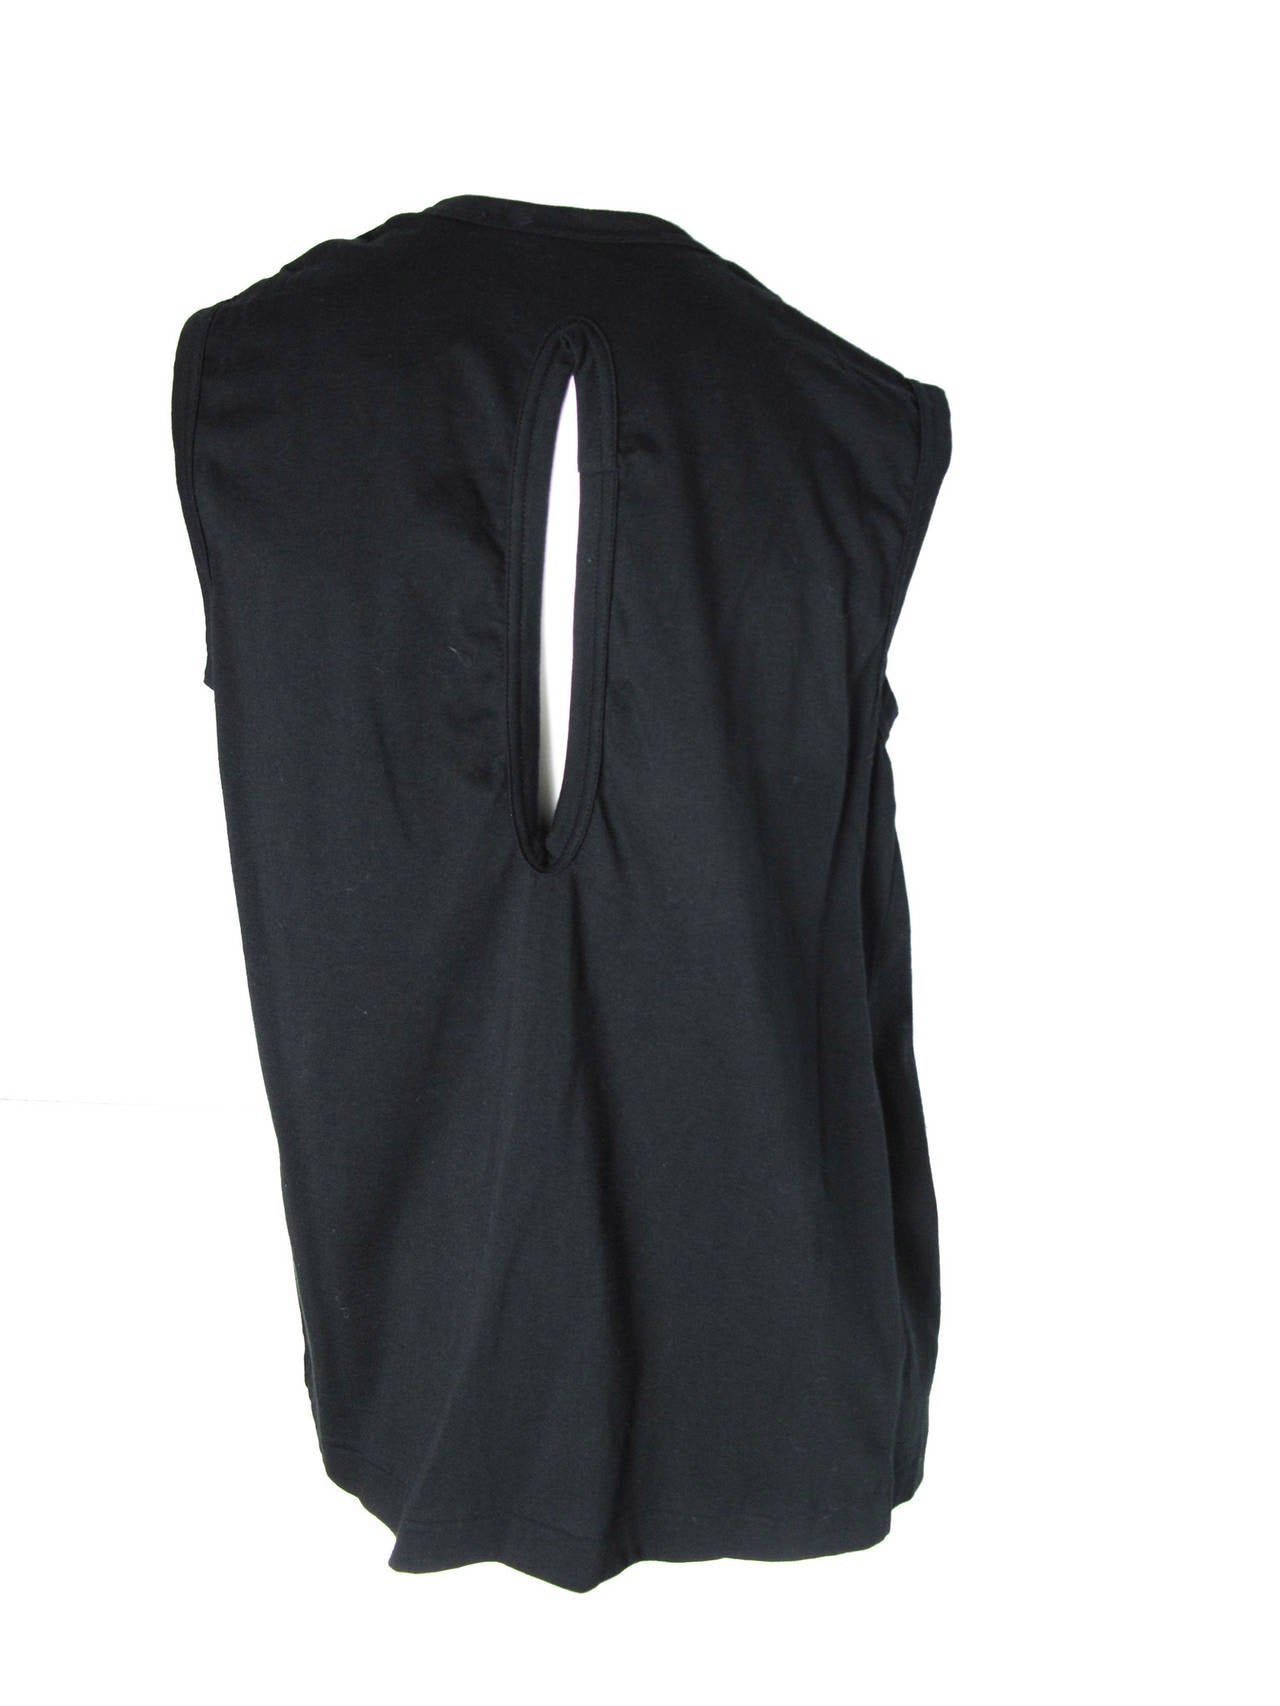 2006 Comme des Garcons black cotton top with slash on back and no closure on front.    34